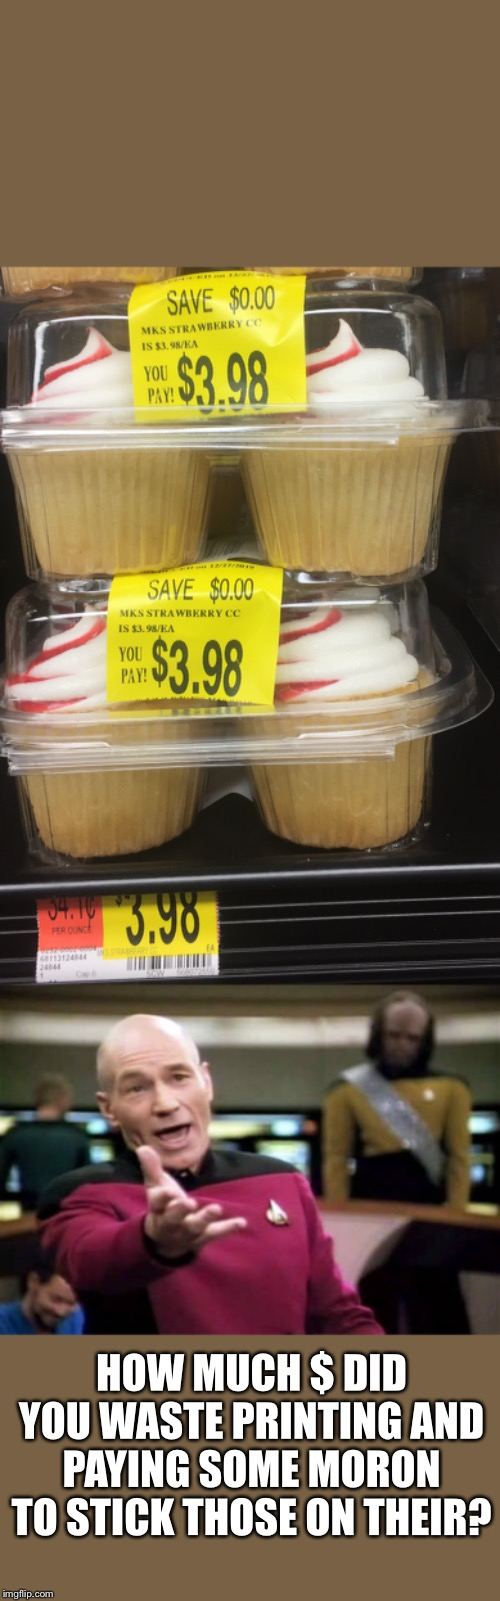 Found these bargain cupcakes on clearance at Walmart | HOW MUCH $ DID YOU WASTE PRINTING AND PAYING SOME MORON TO STICK THOSE ON THEIR? | image tagged in memes,picard wtf,walmart savings | made w/ Imgflip meme maker